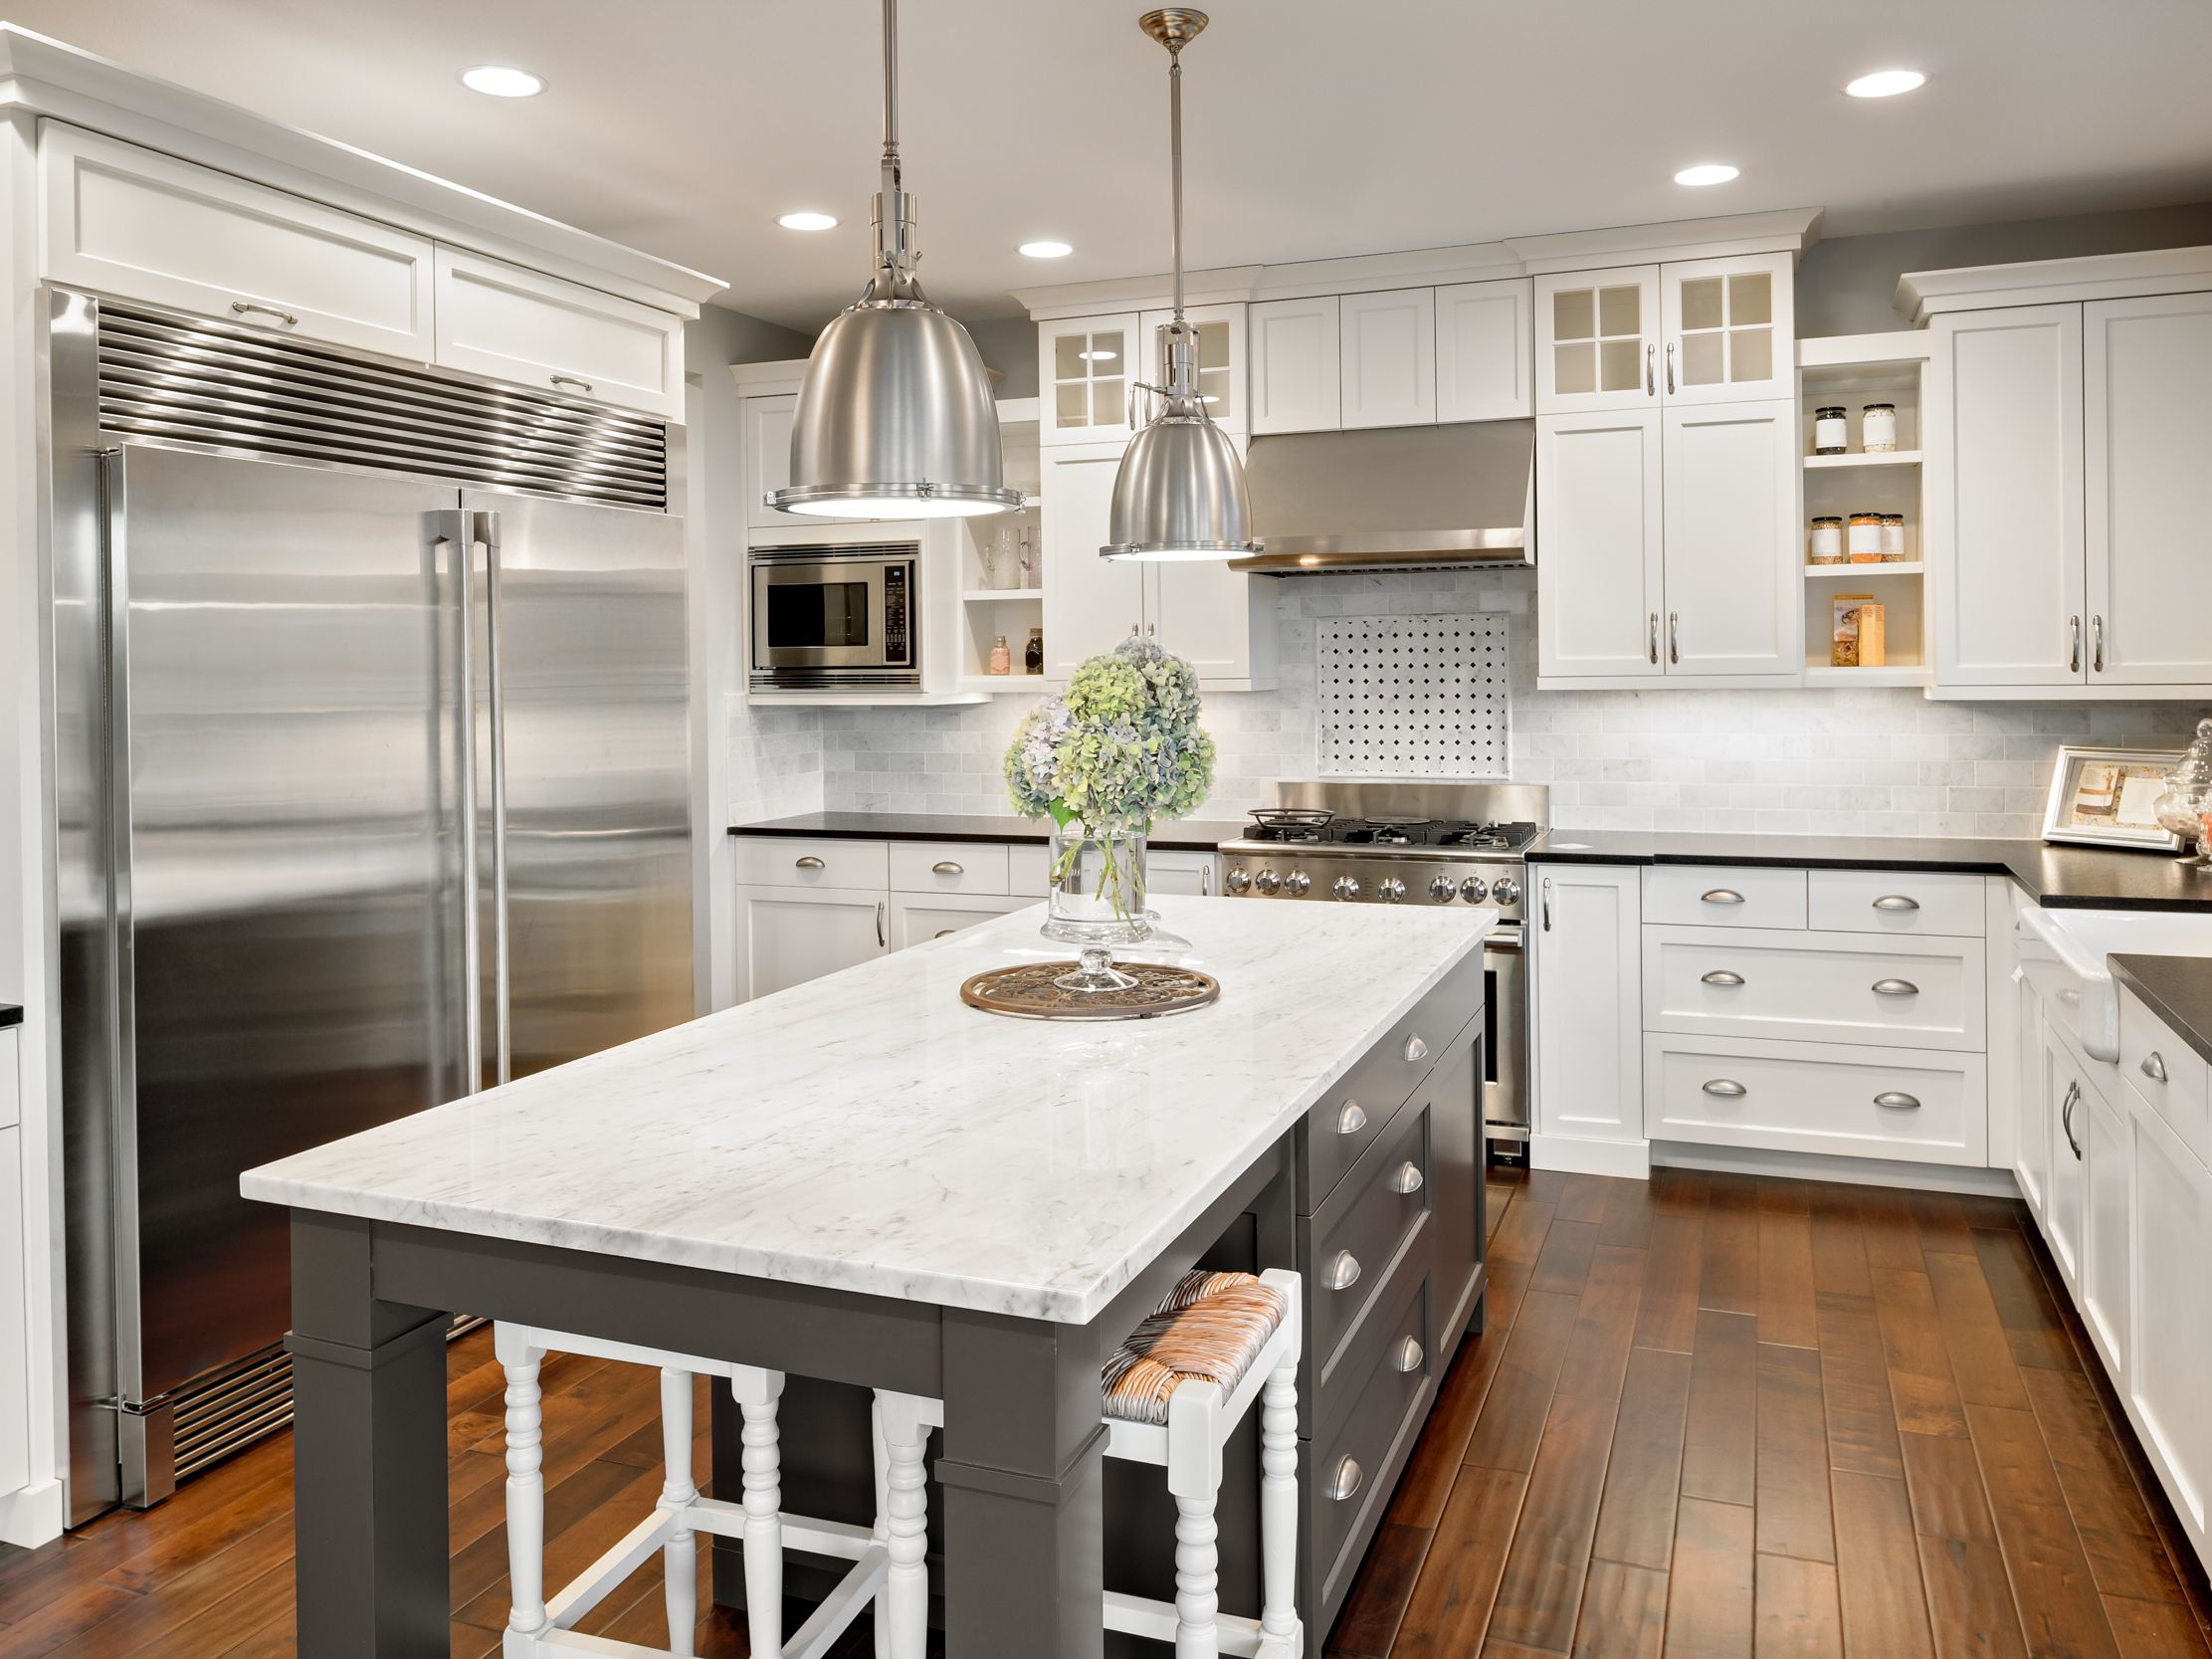 10 Considerations To Know When Purchasing & Installing Cabinets